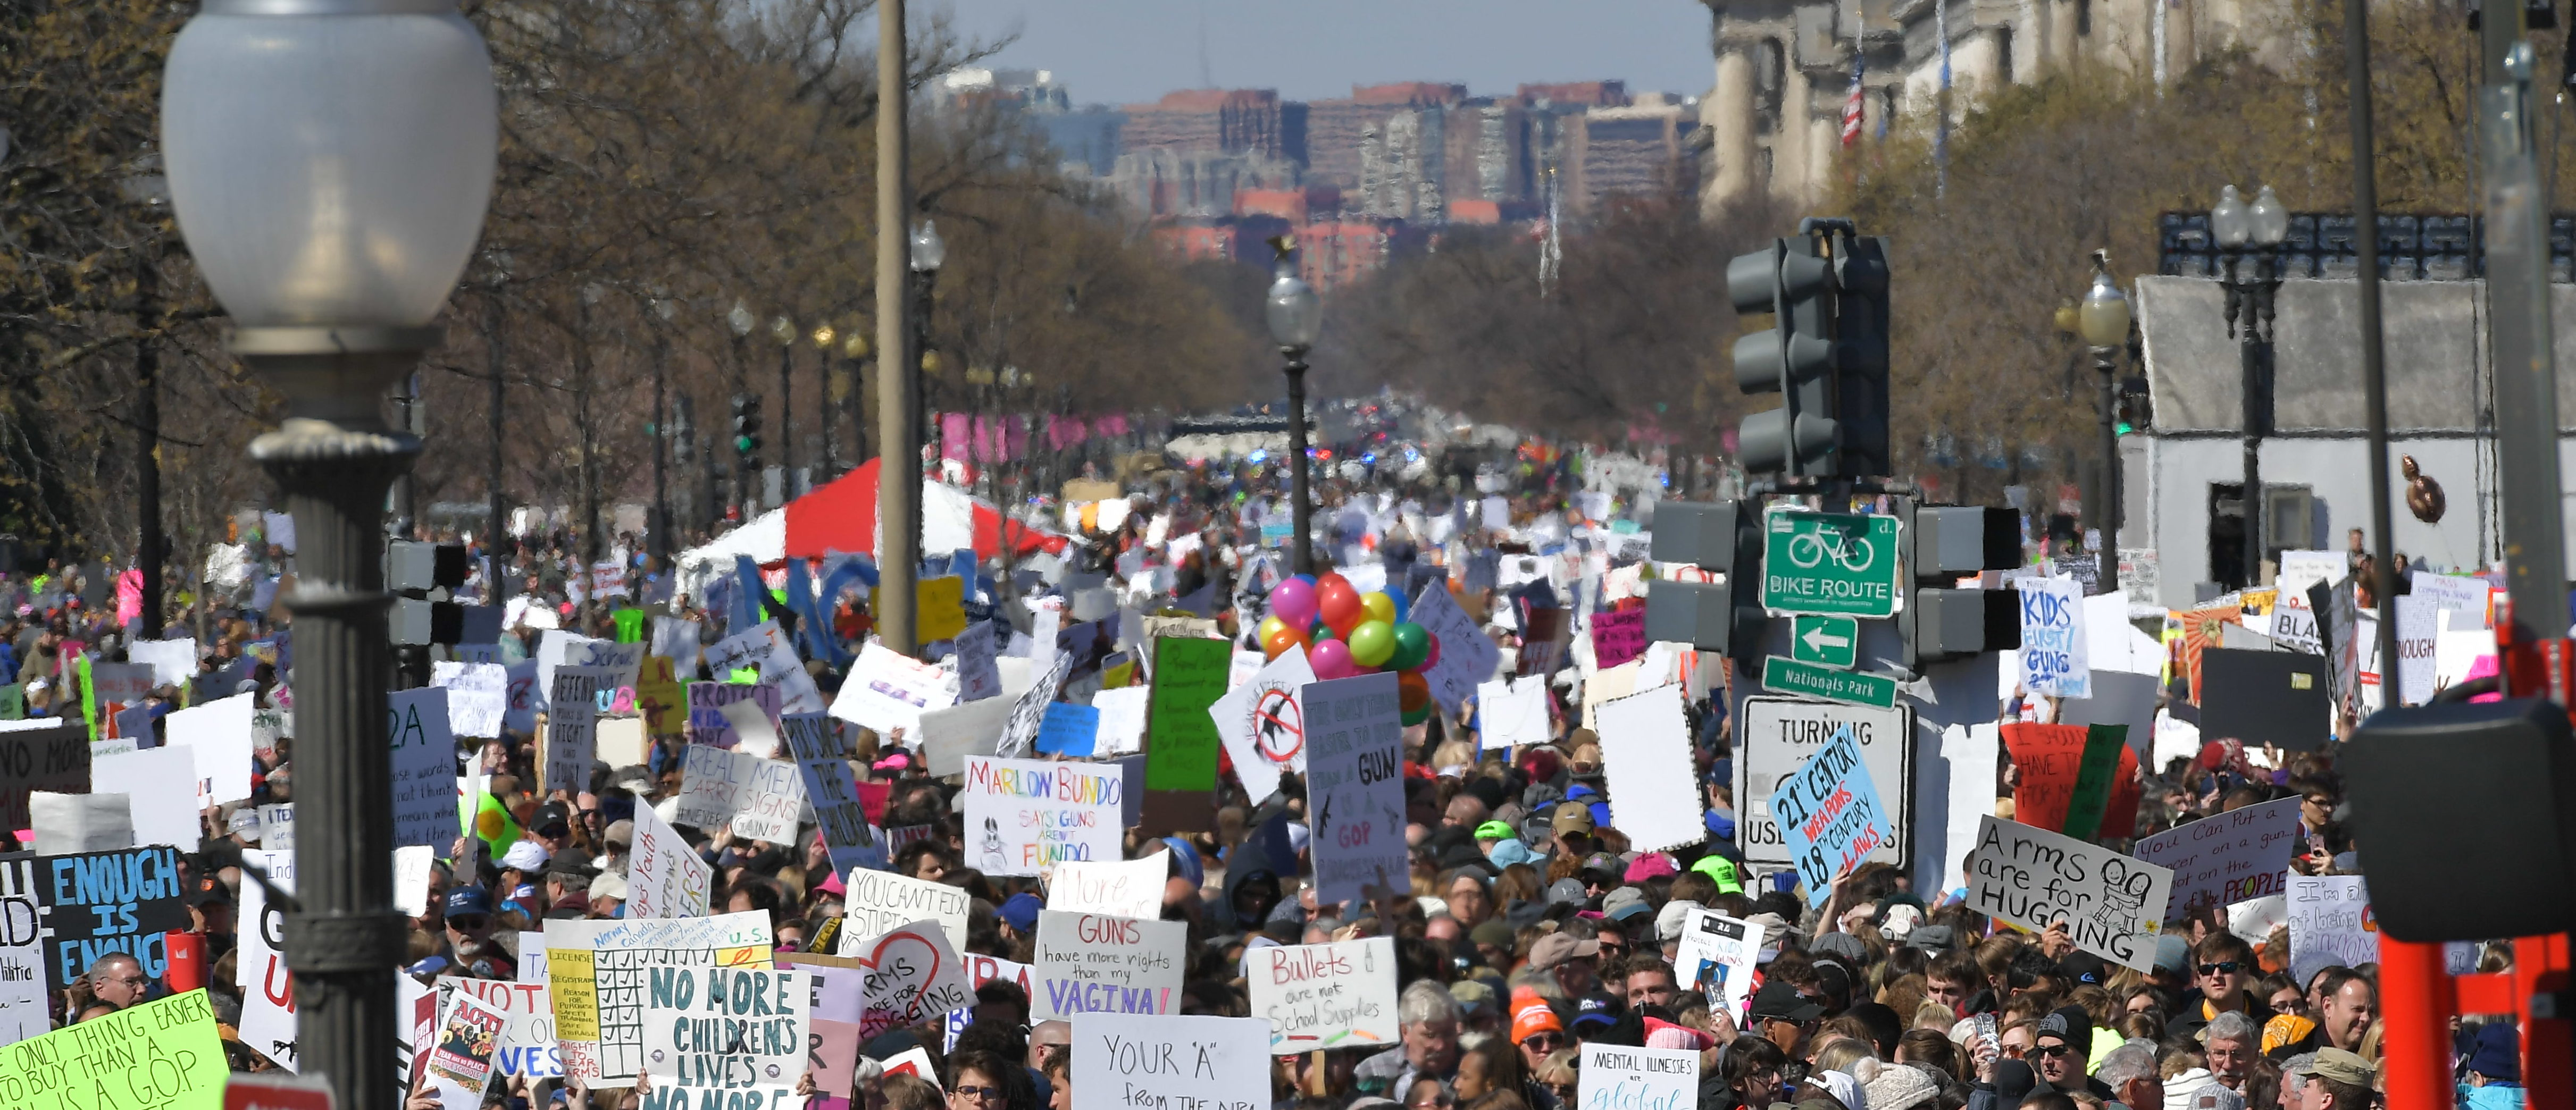 People gather at the March for Our Lives Rally in Washington, DC on March 24, 2018. Galvanized by a massacre at a Florida high school, hundreds of thousands of Americans are expected to take to the streets in cities across the United States on Saturday in the biggest protest for gun control in a generation. (NGAN/AFP/Getty Images)